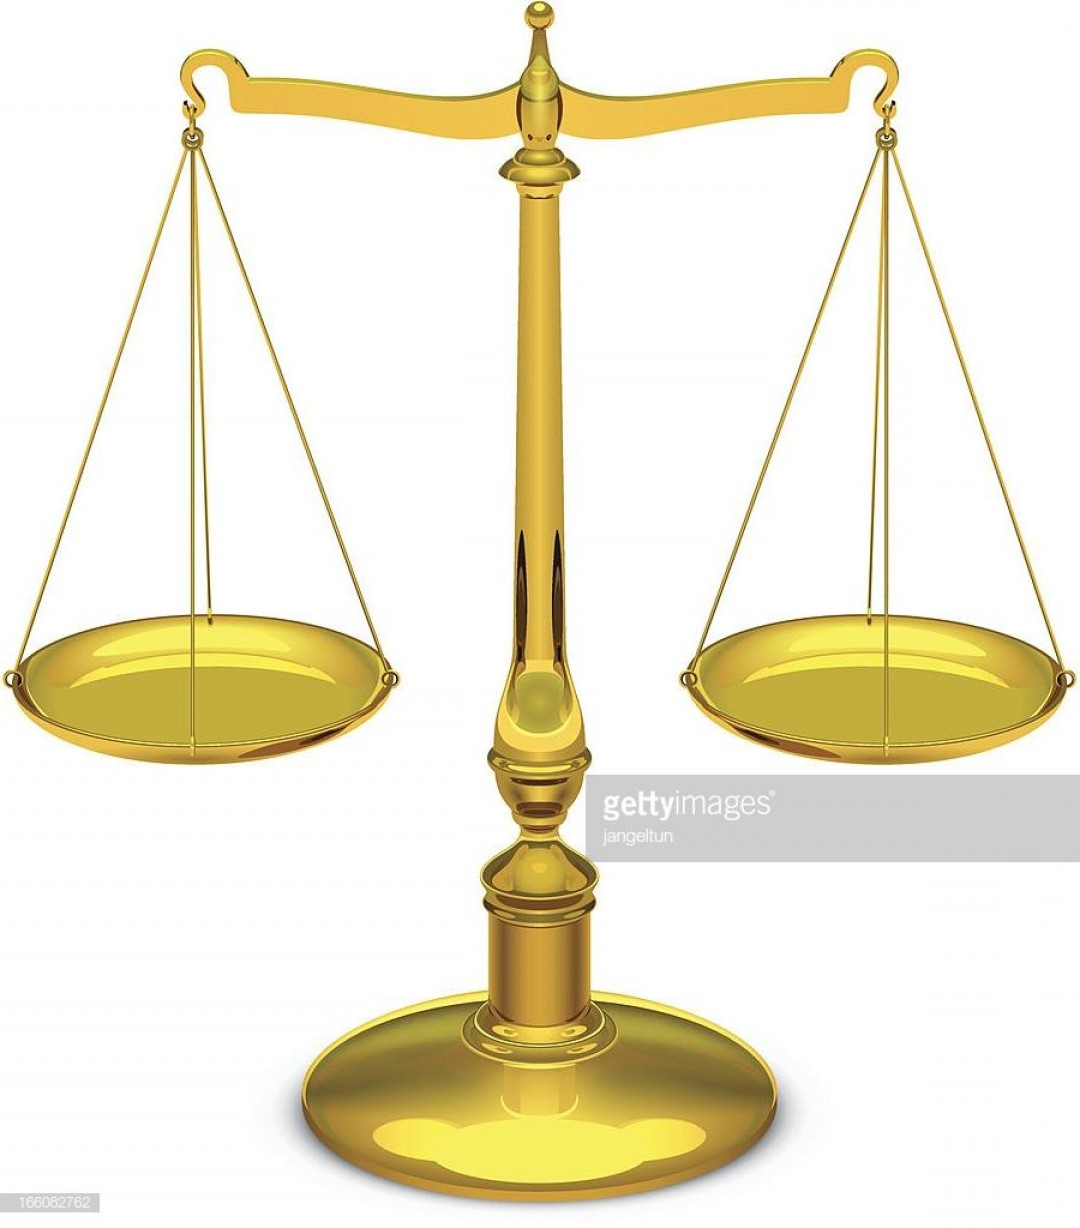 Scales Of Justice Vector: Top Scales Of Justice Vector Pictures